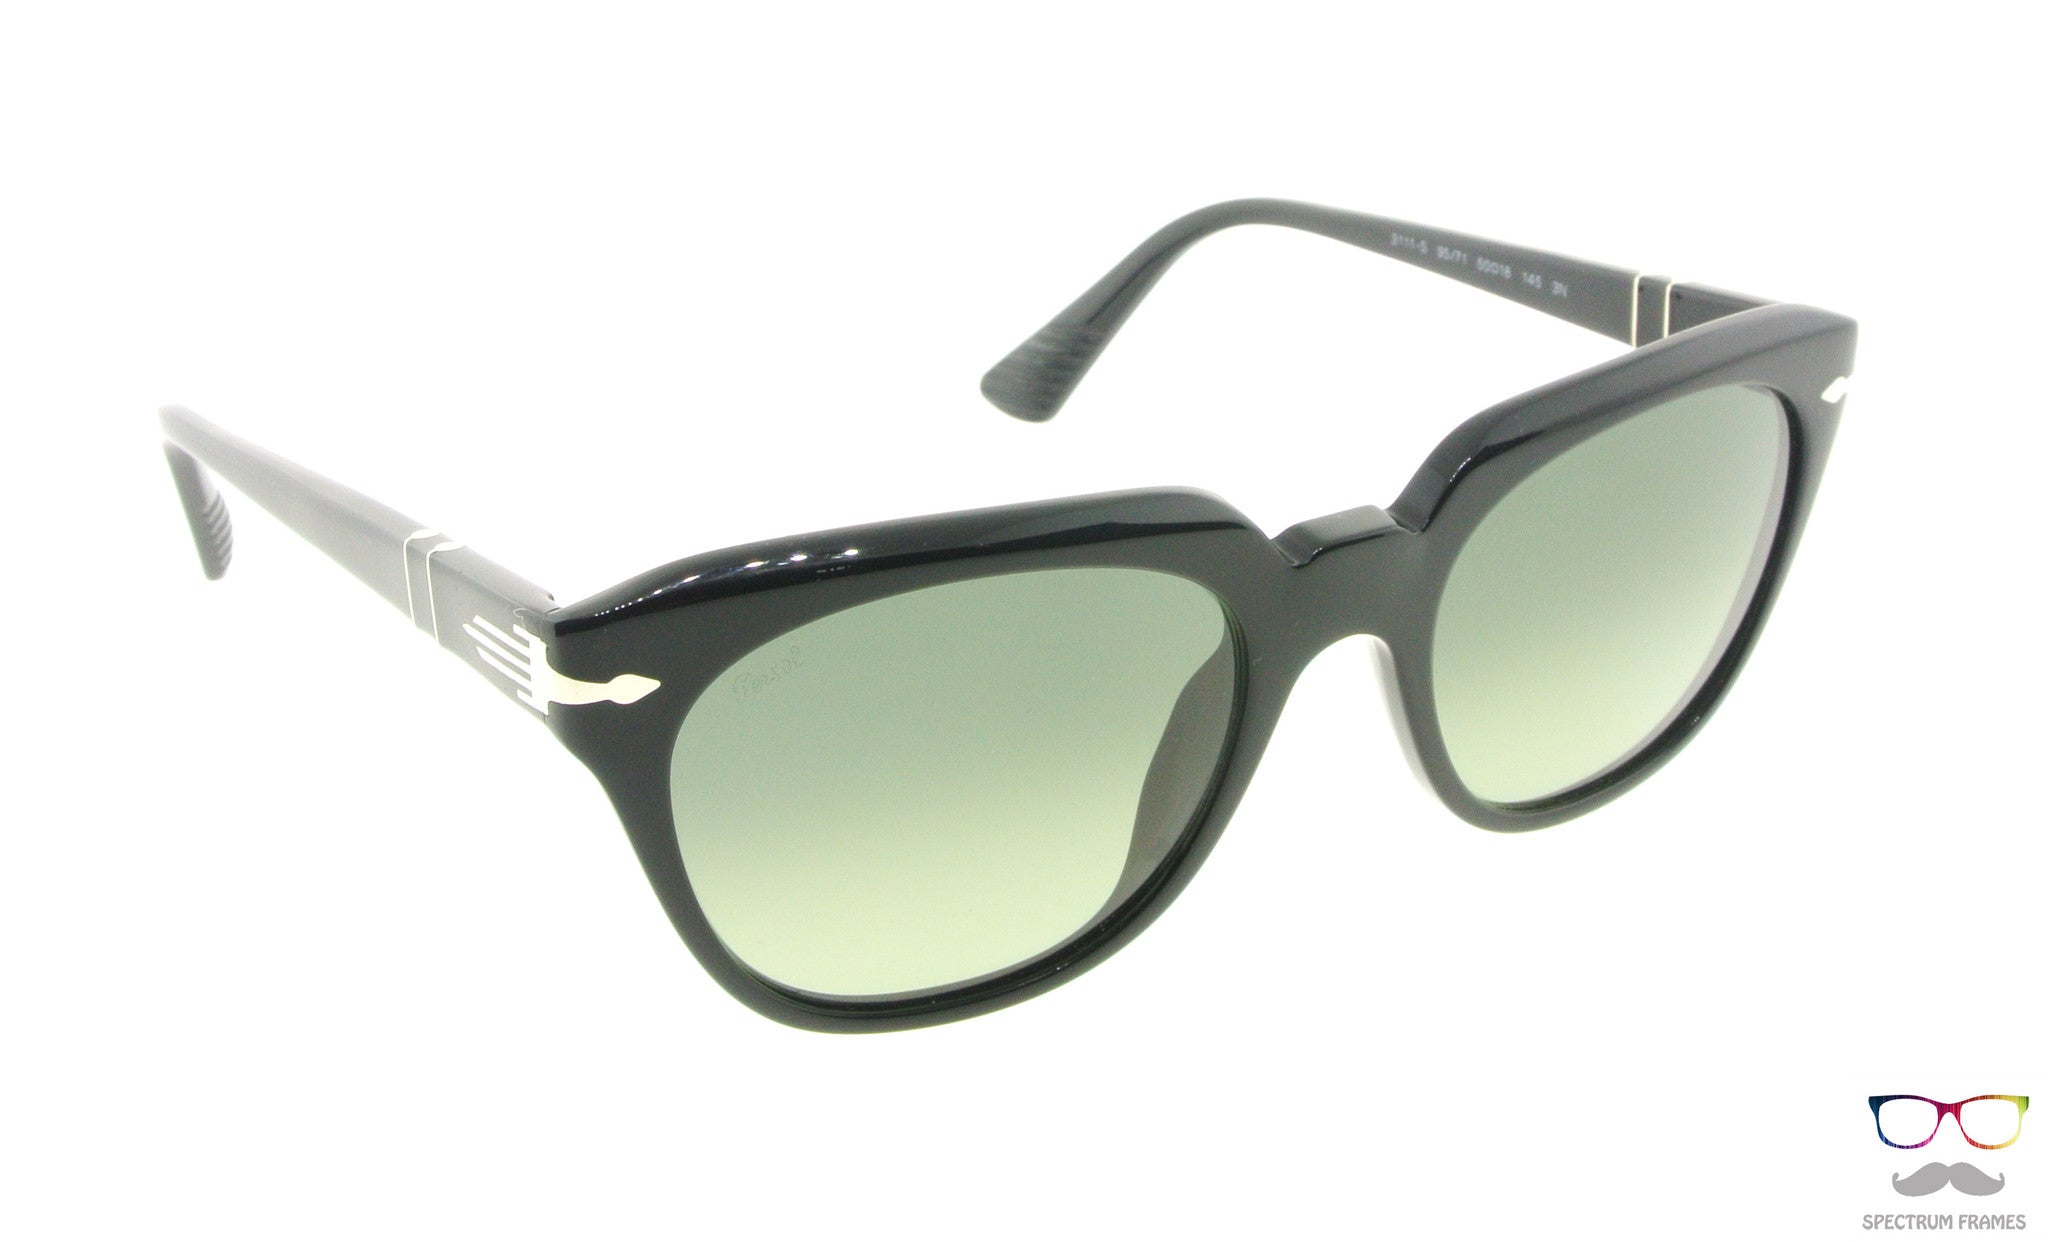 Persol 3111s/95/71